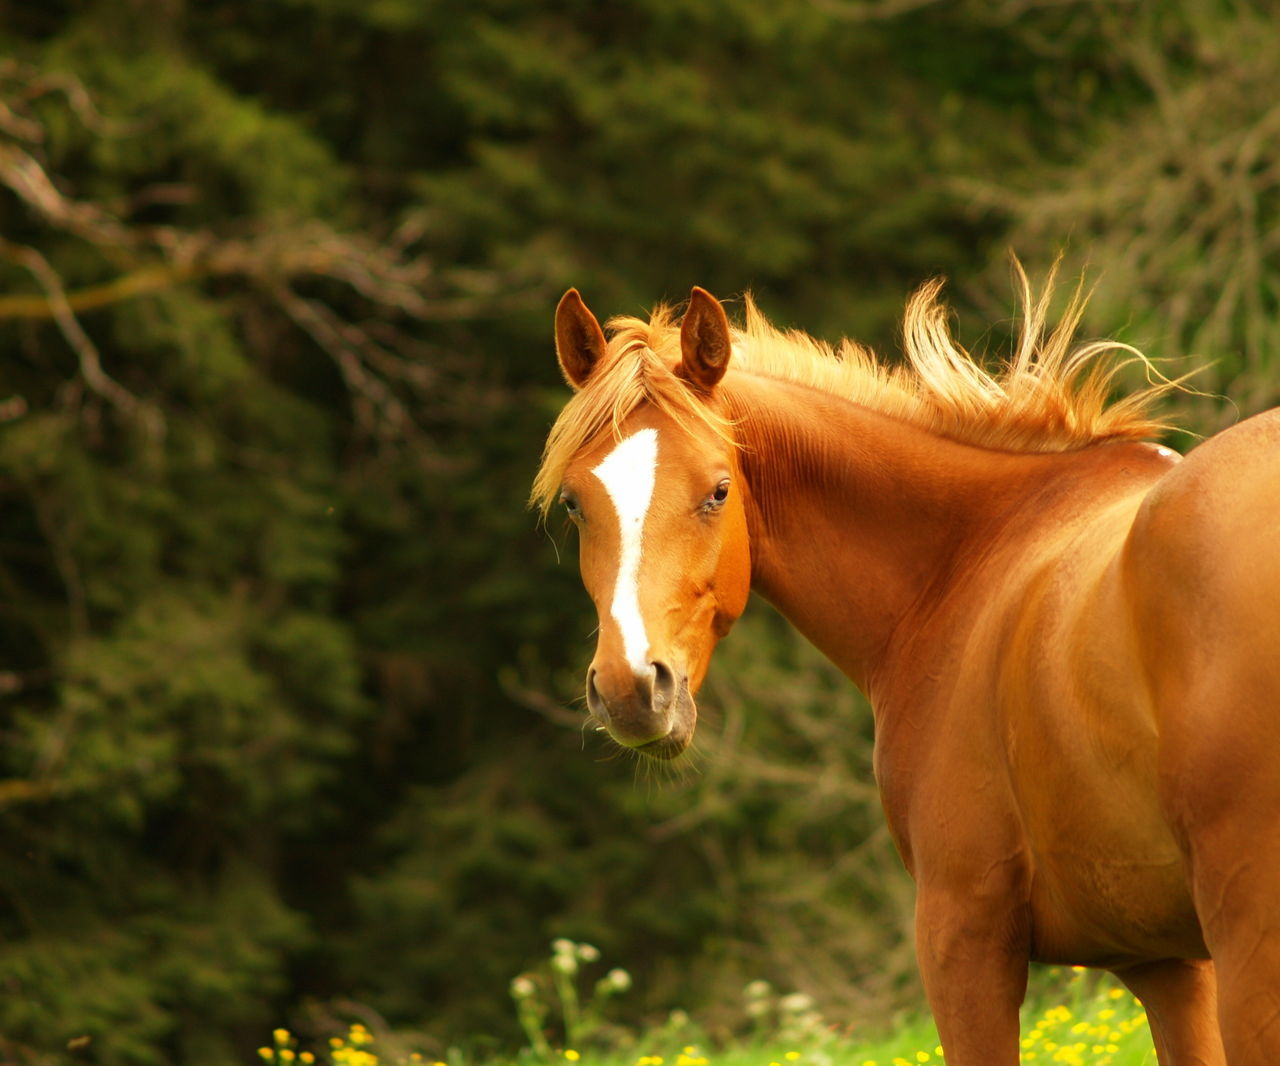 animal, horse, mammal, domestic animals, animal themes, domestic, vertebrate, livestock, animal wildlife, pets, focus on foreground, one animal, brown, field, land, day, working animal, looking at camera, nature, no people, herbivorous, outdoors, ranch